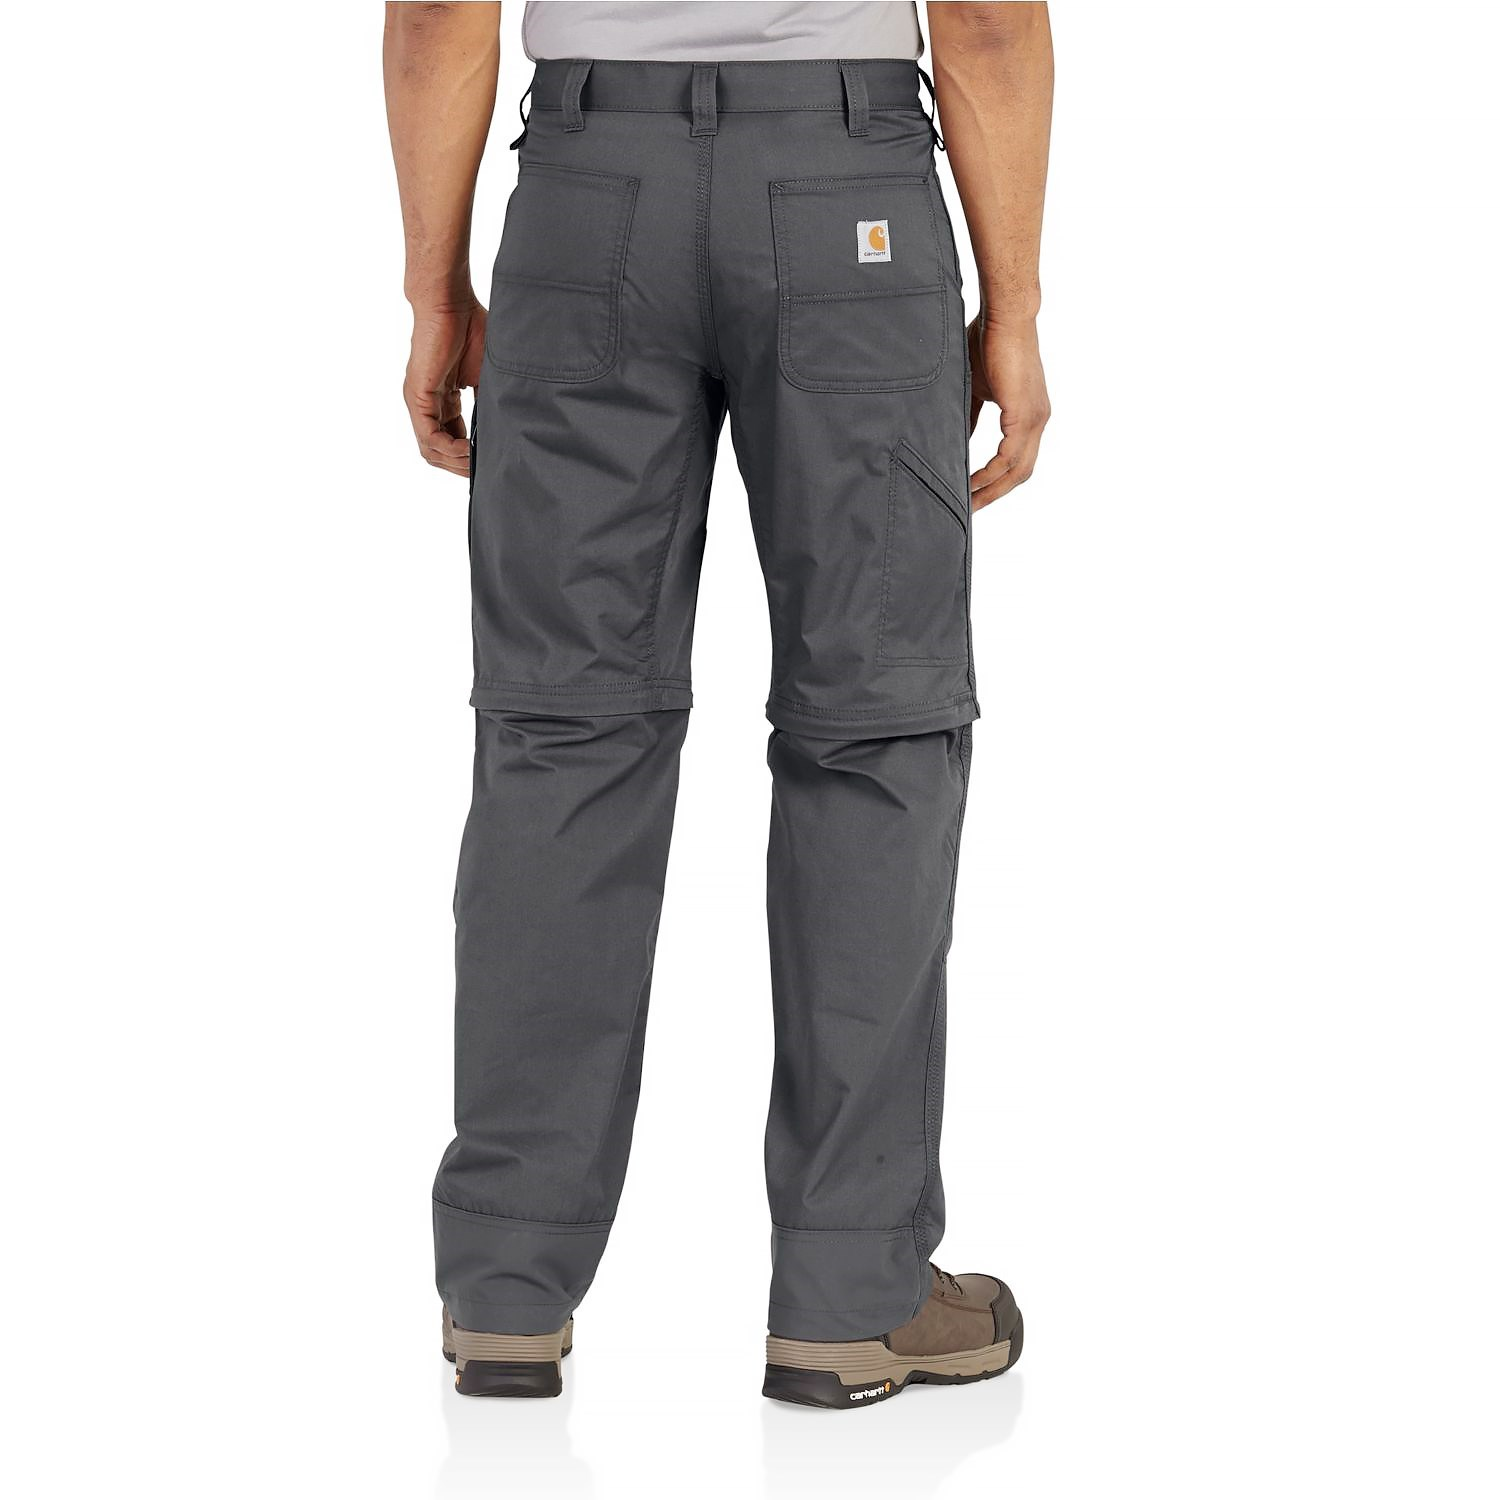 Carhartt Force Extremes Convertible Pants For Men